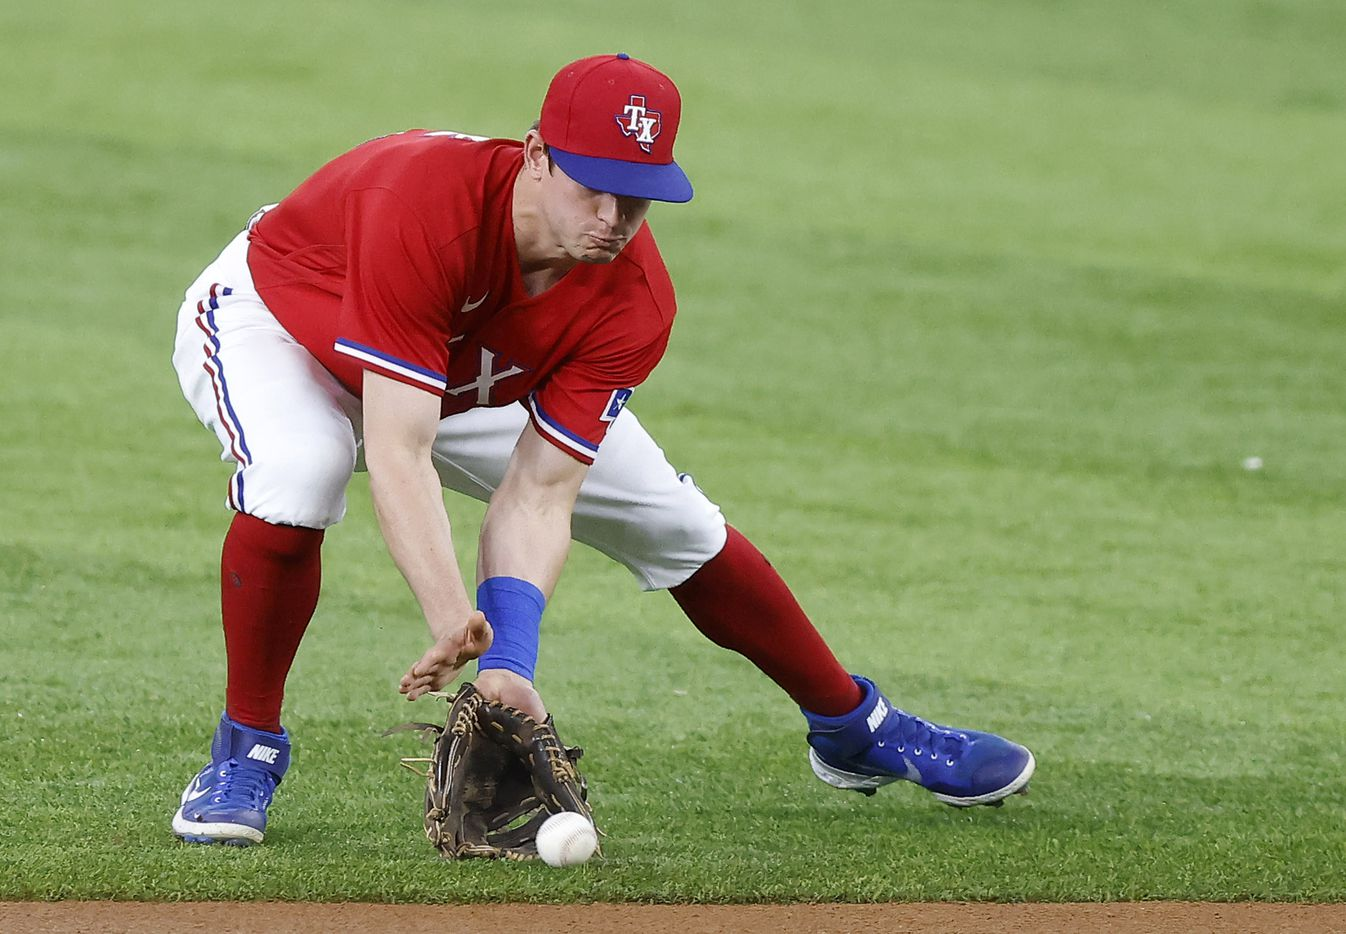 Texas Rangers second baseman Nick Solak (15) fields a batted ball and throws pout Houston Astros Alex Bregman during the first inning at Globe Life Field in Arlington, Texas, Friday, May 21, 2021. (Tom Fox/The Dallas Morning News)